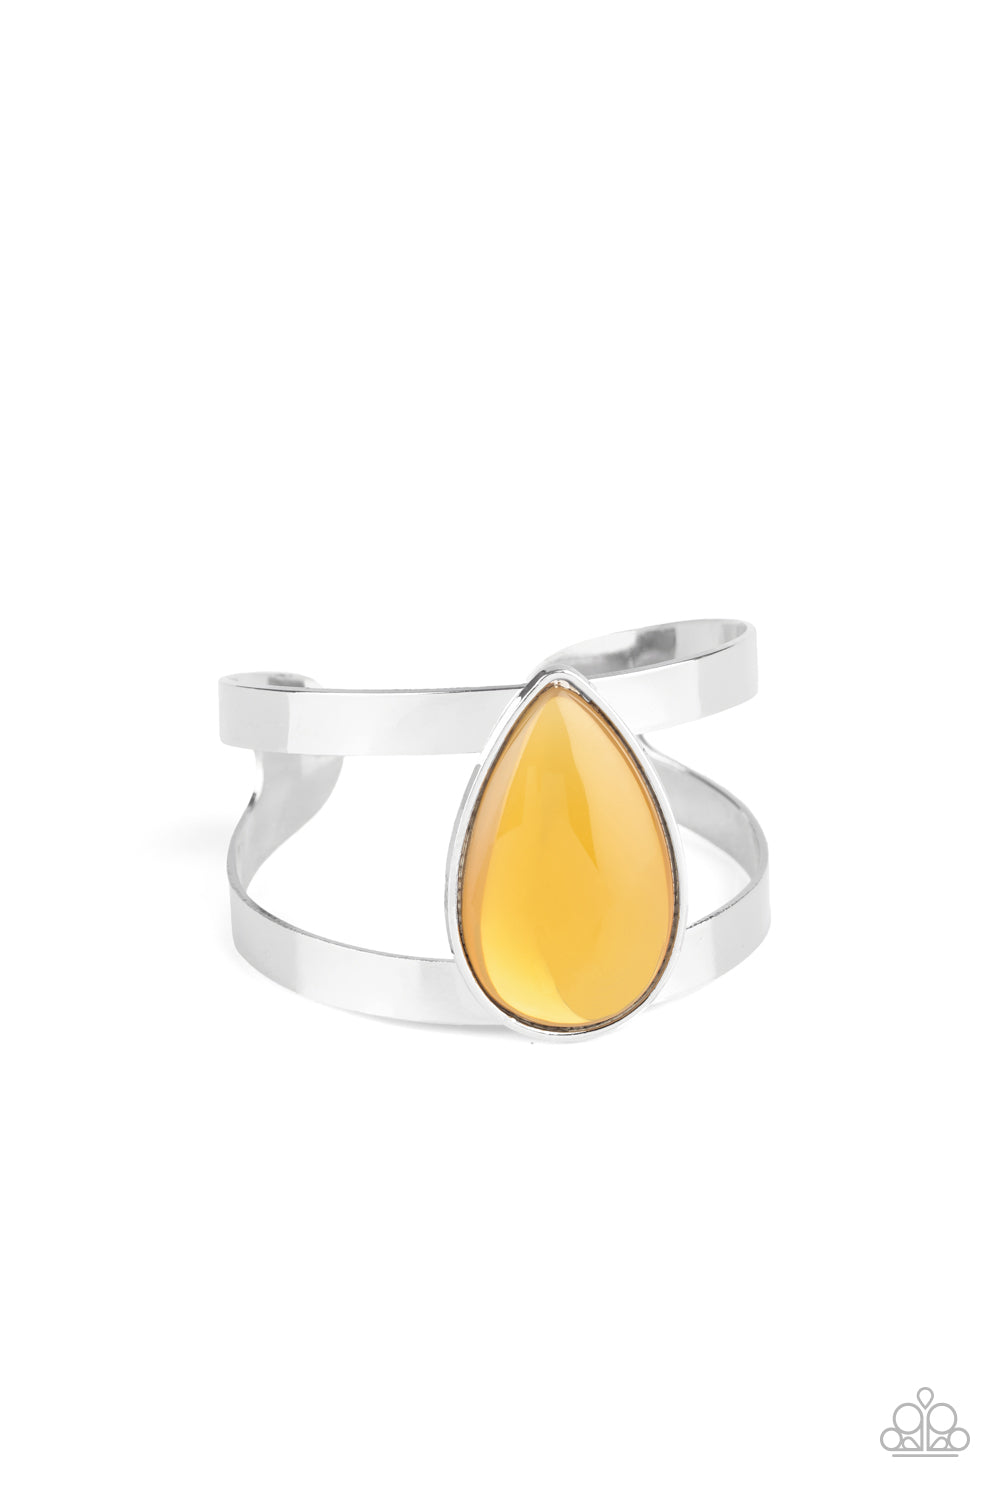 Paparazzi Accessories - Optimal Opalescence - Yellow Bracelet